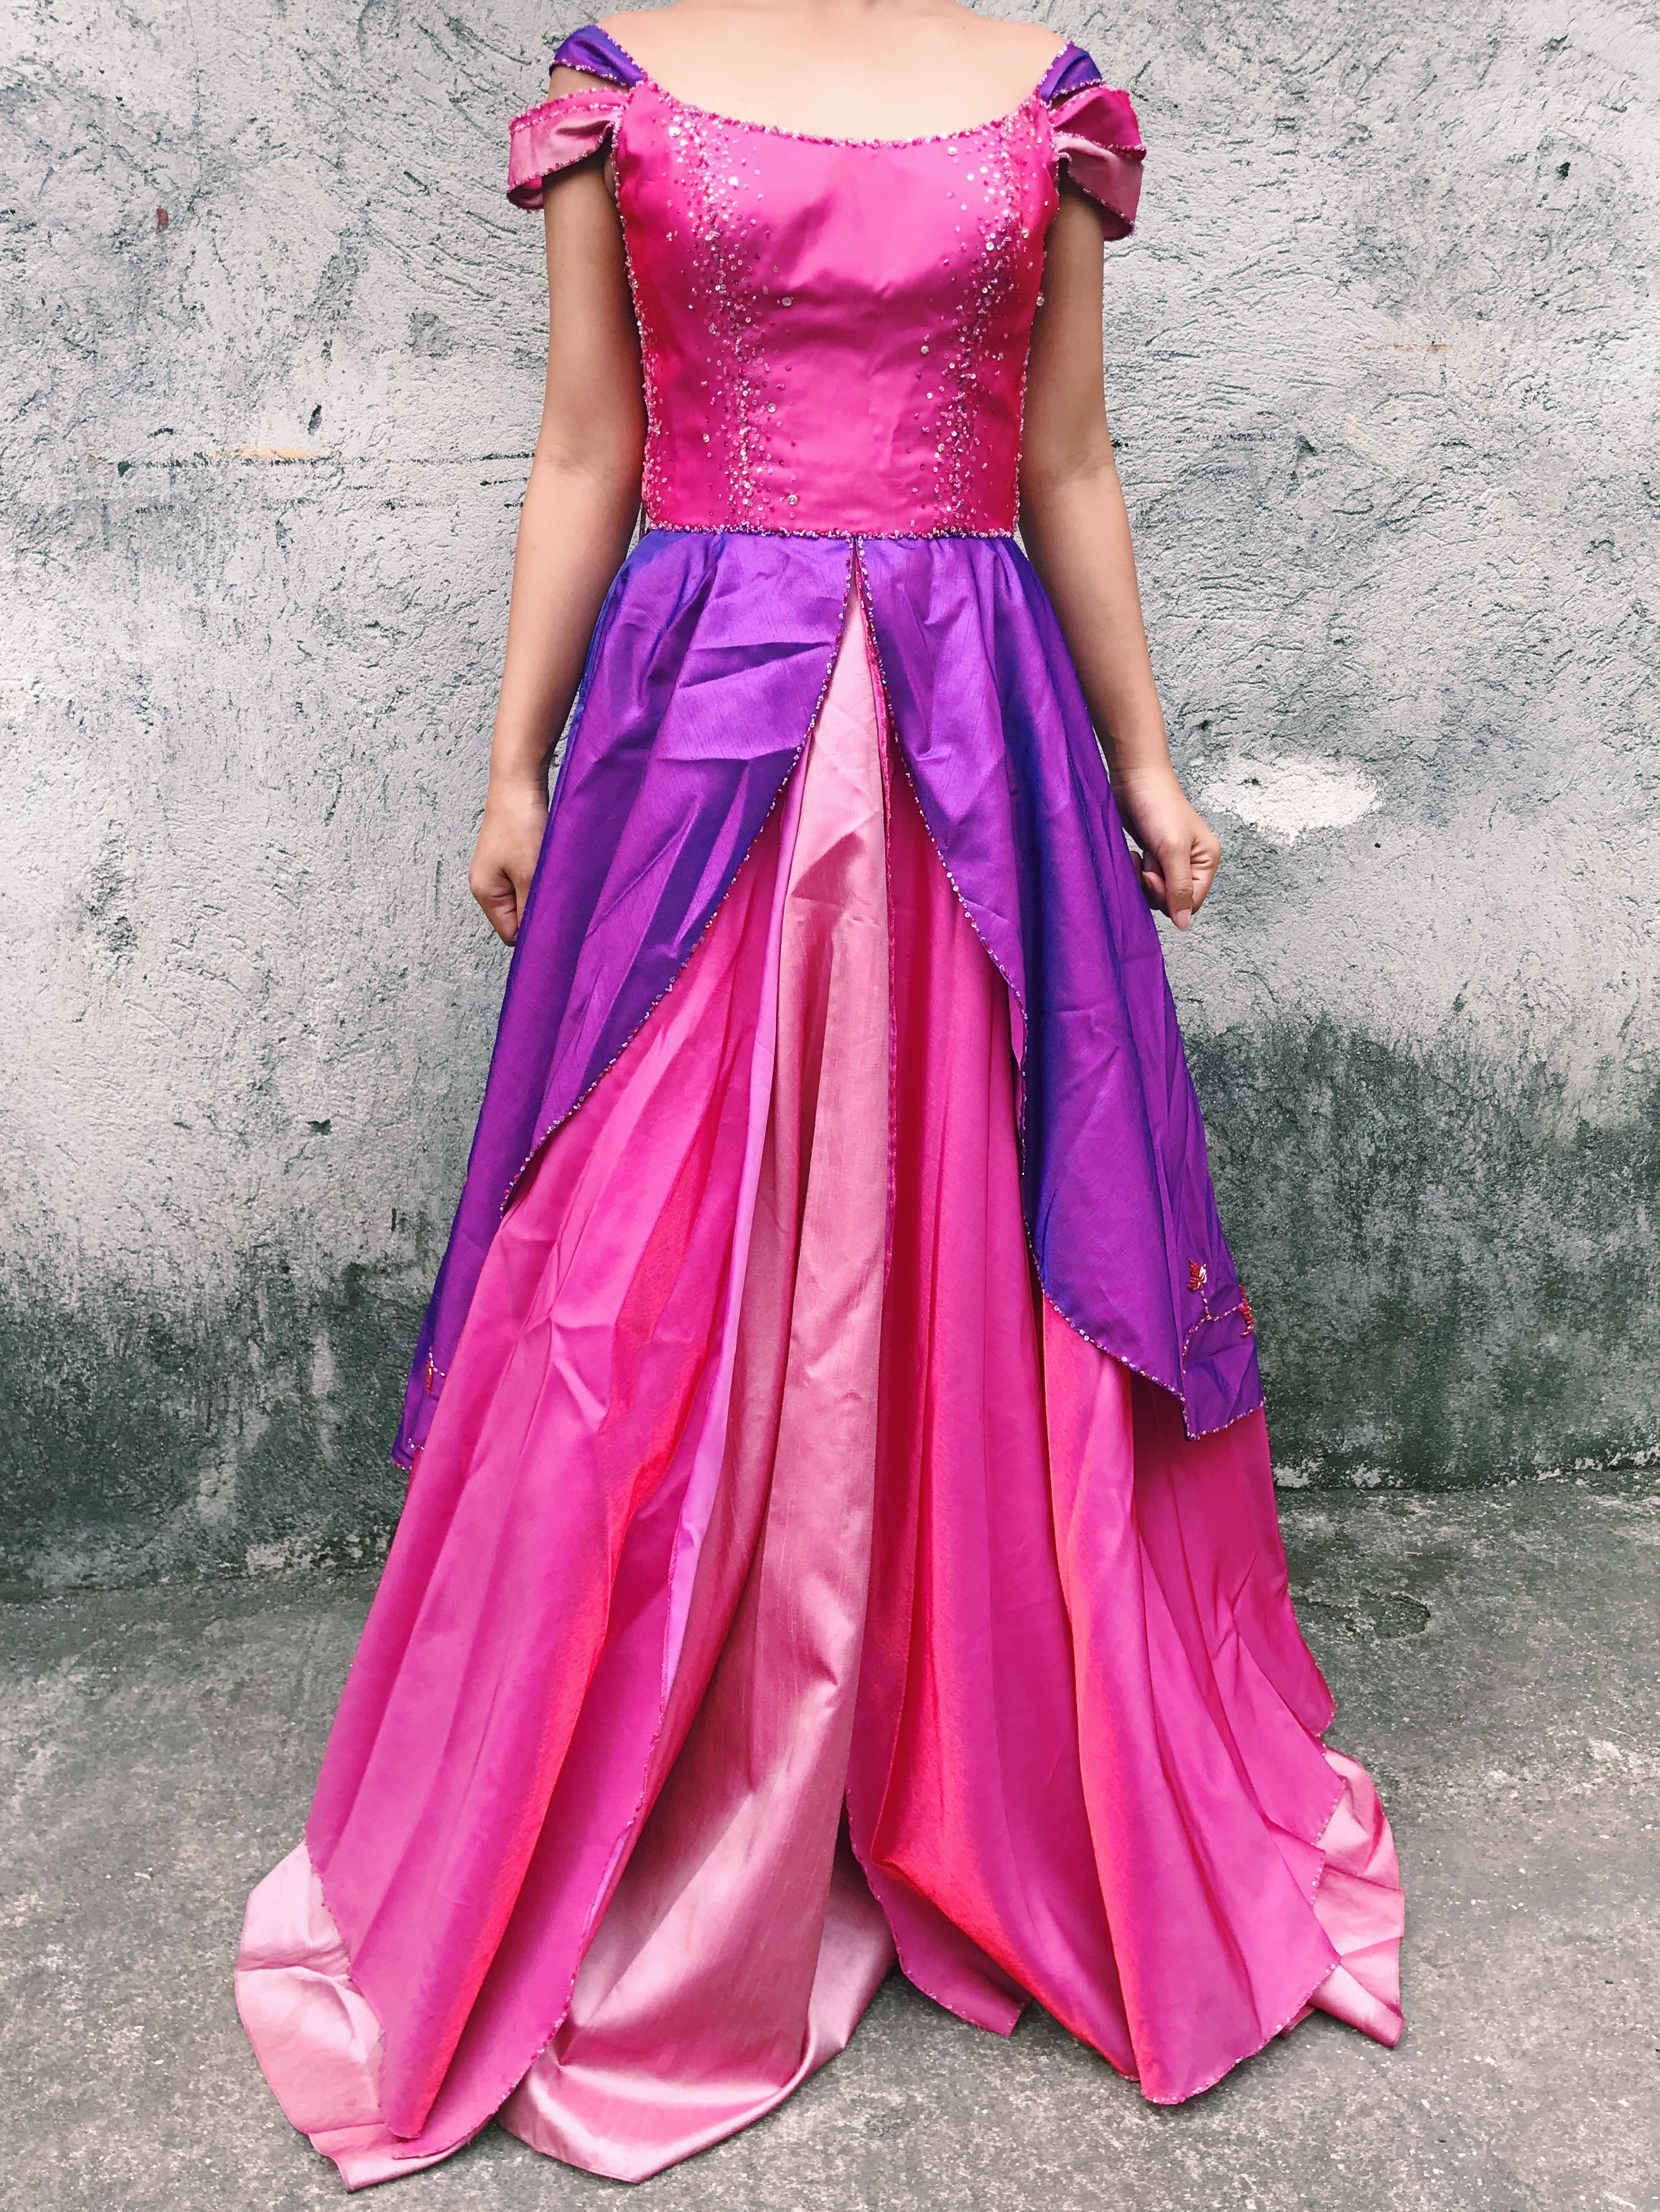 PINK / PURPLE BALL GOWN FOR RENT, Women\'s Fashion, Clothes on Carousell